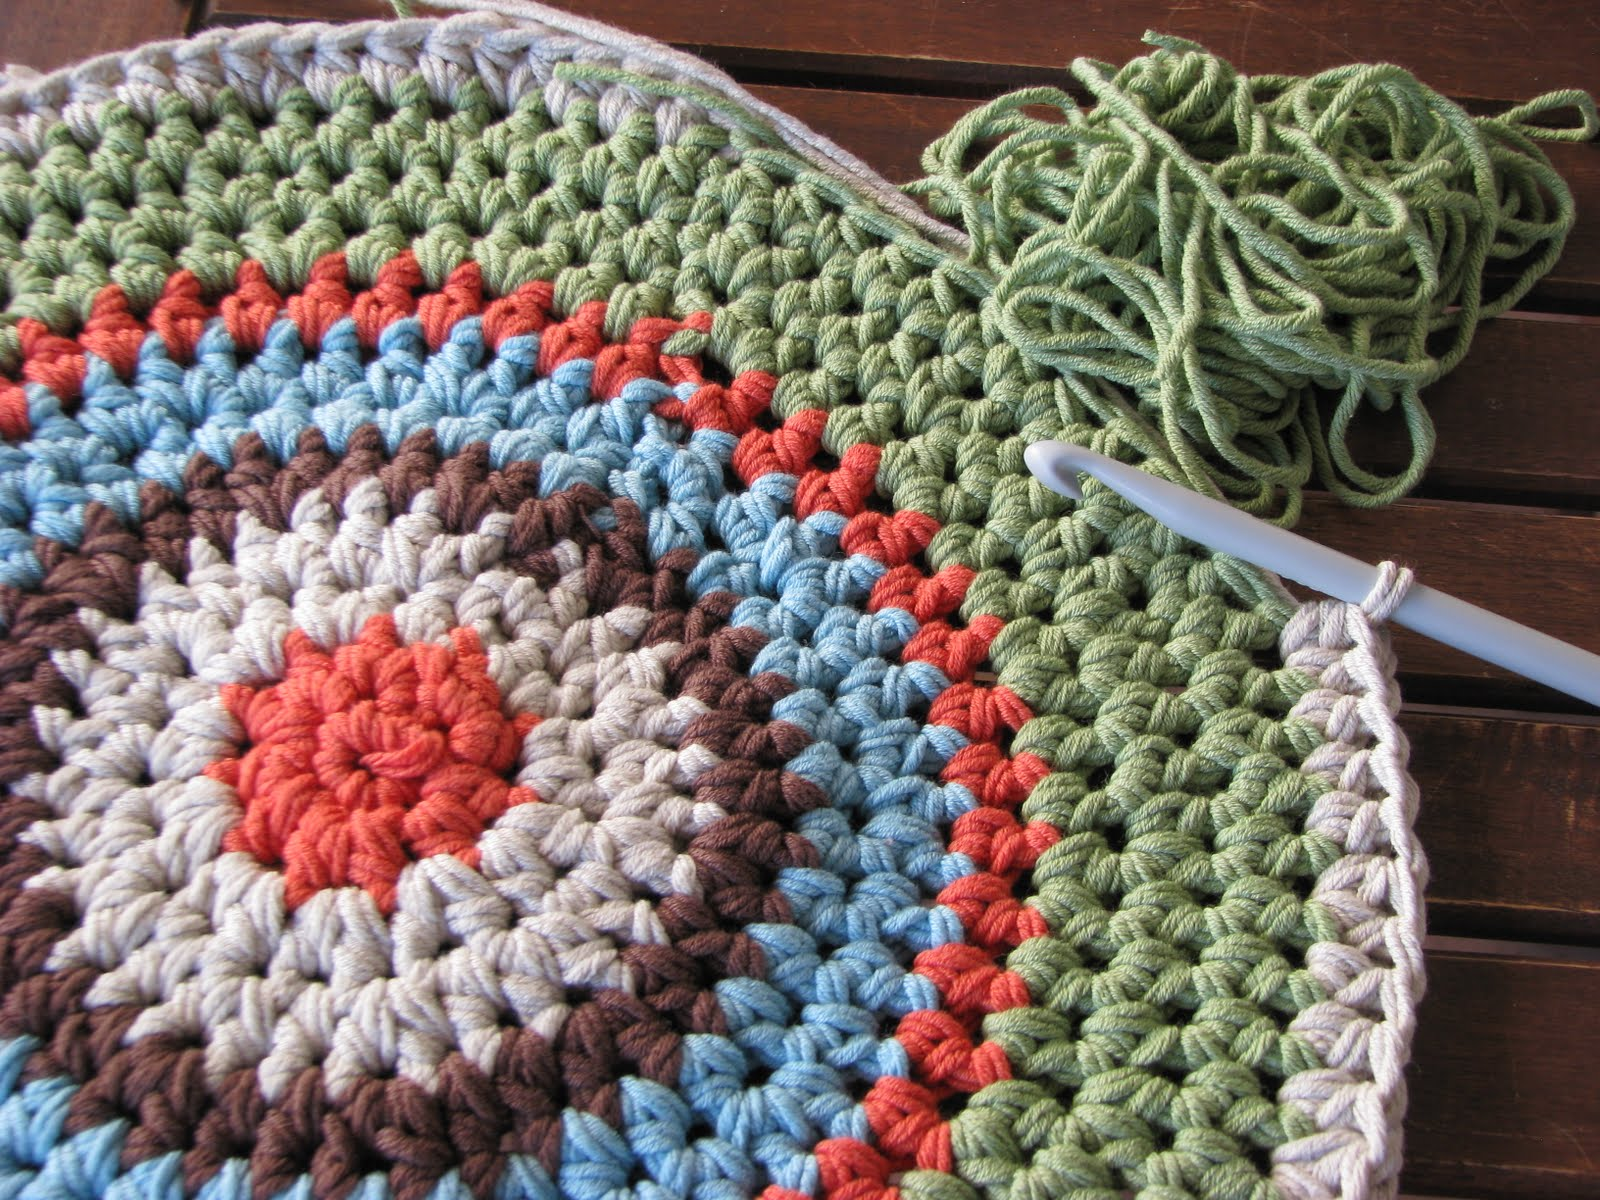 Crochet Patterns Using Cotton Yarn : Lady Crochet: Crochet Round Rug